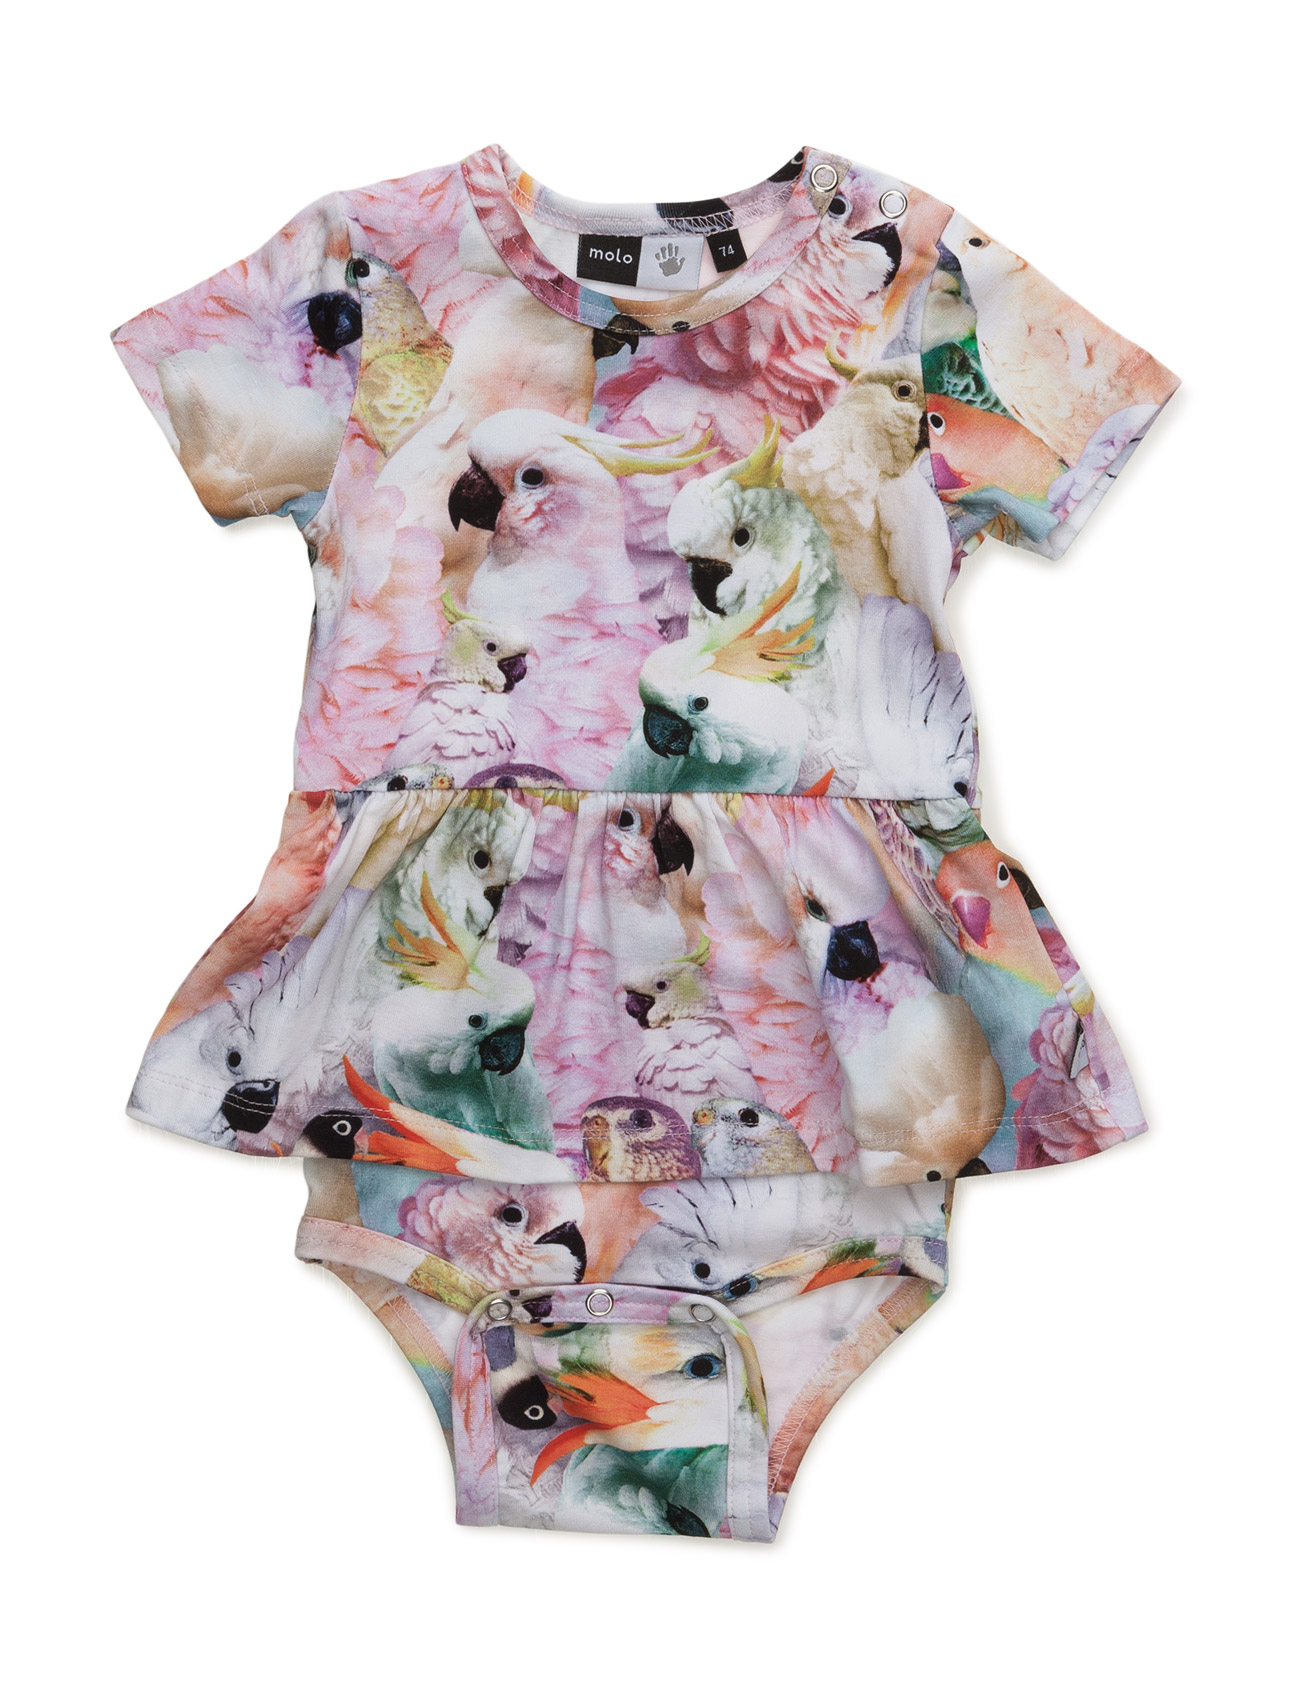 French Baby Clothes Brands Newest and Cutest Baby Clothing